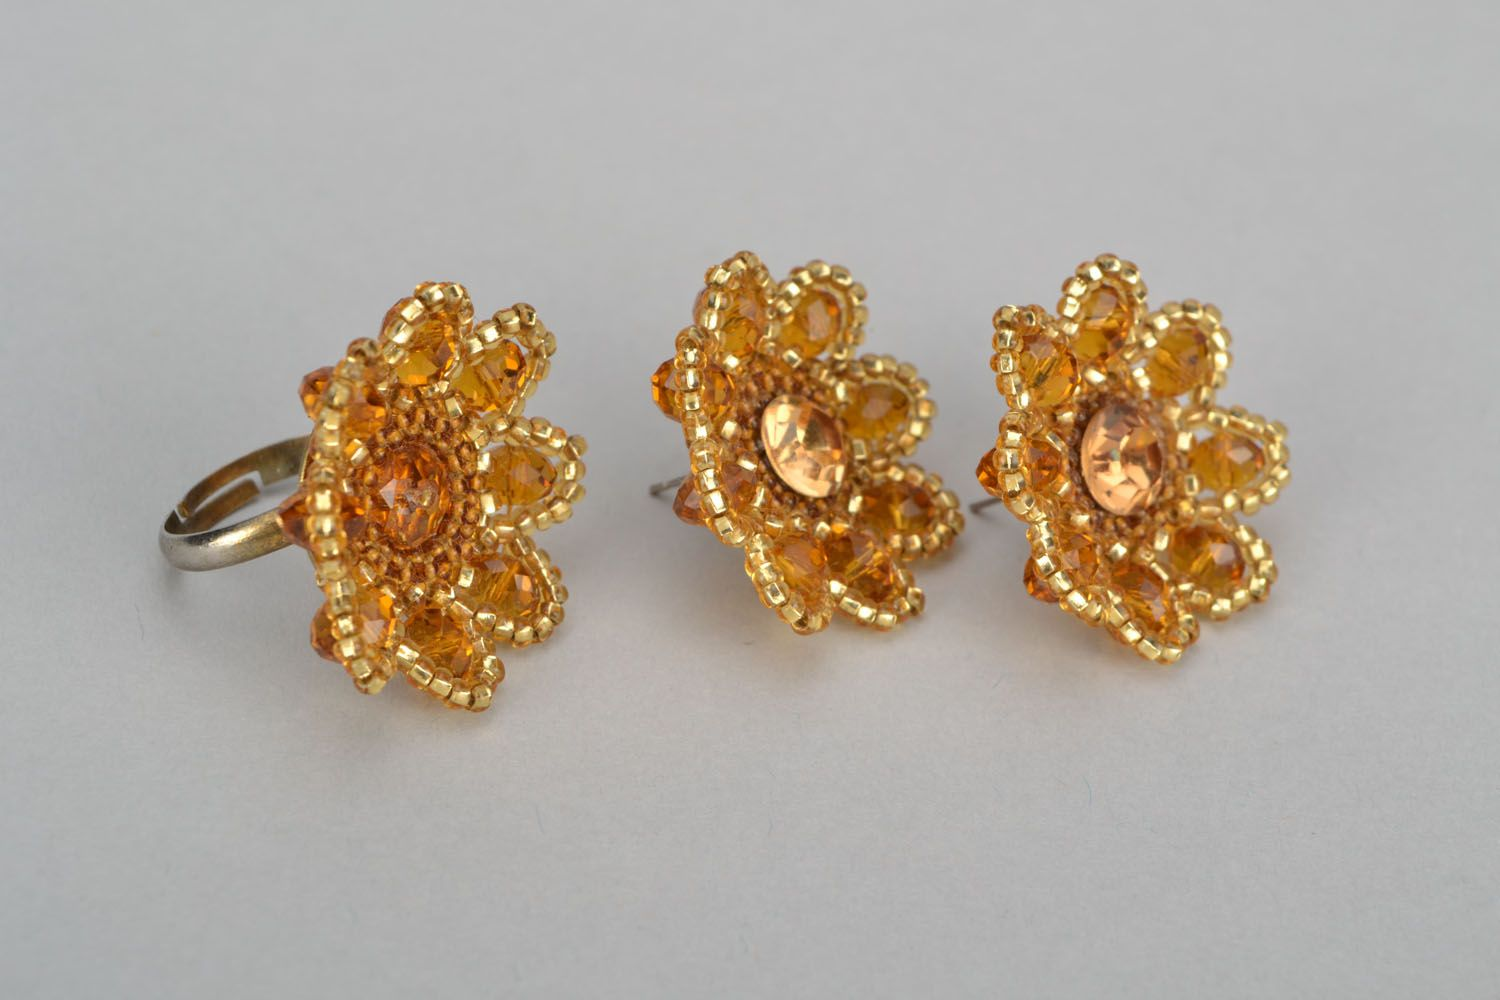 Stud earrings and ring made of beads photo 3